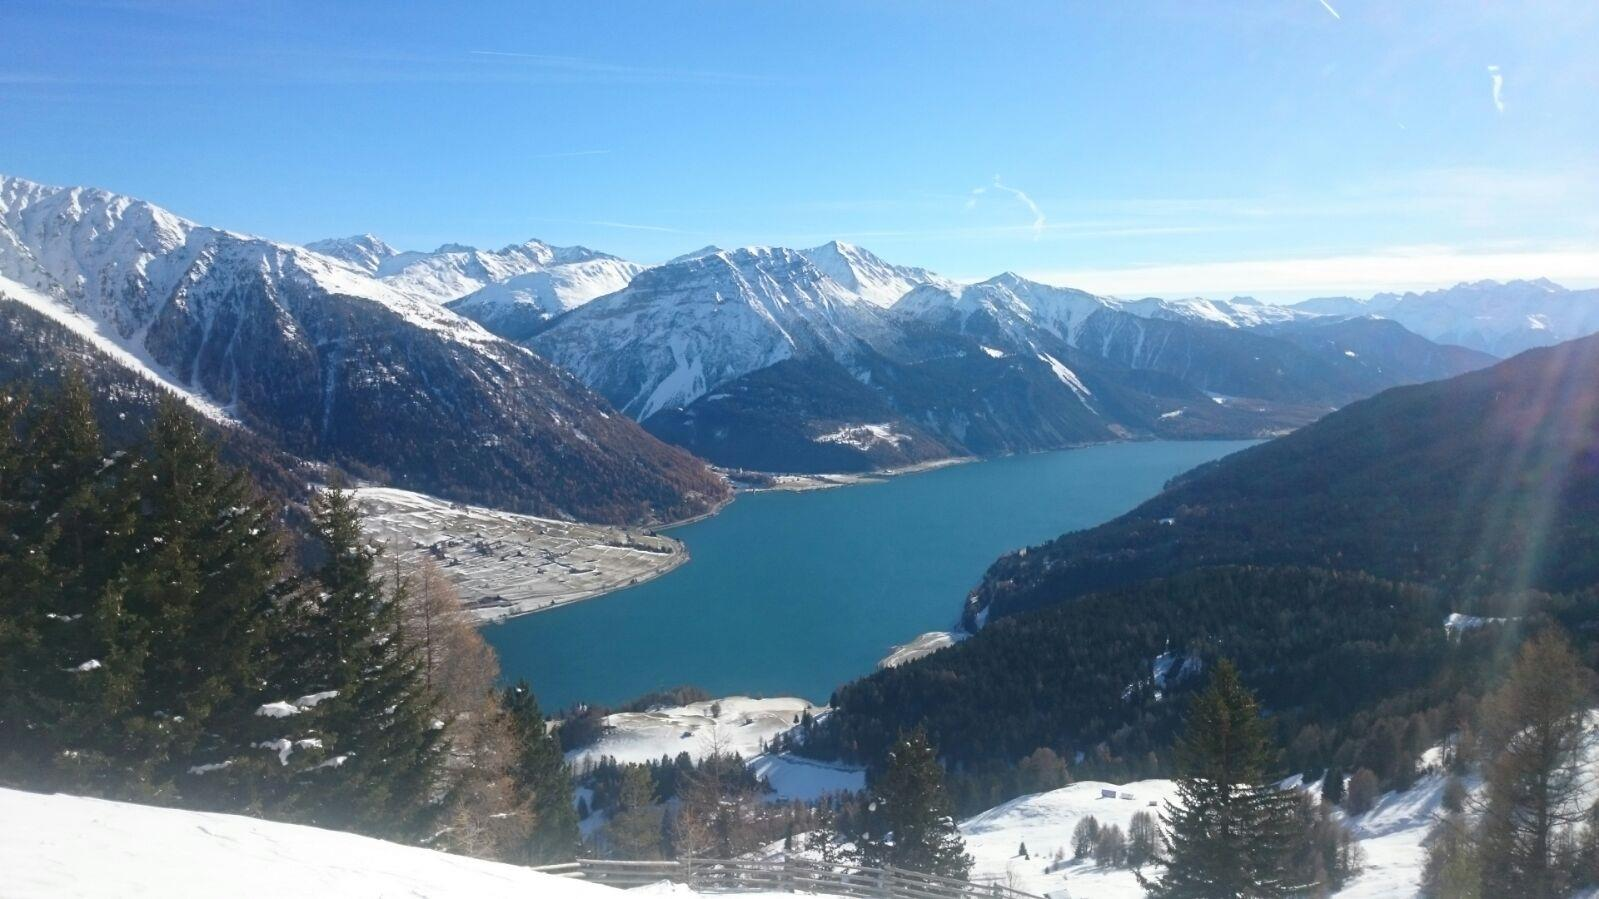 View over the Reschen lake